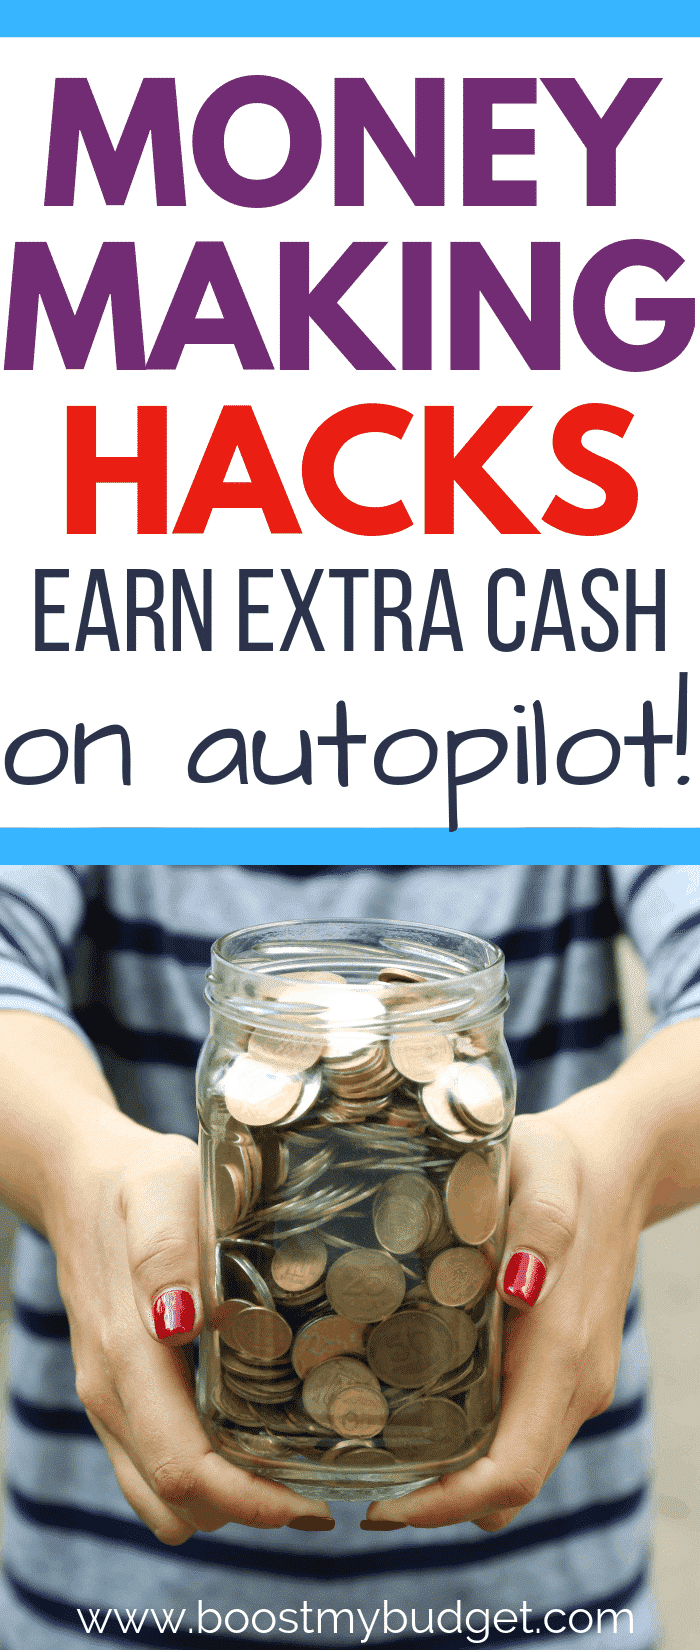 How to make money on autopilot! With these 5 clever money making hacks, you'll make extra cash without even noticing. Click through to find out how!